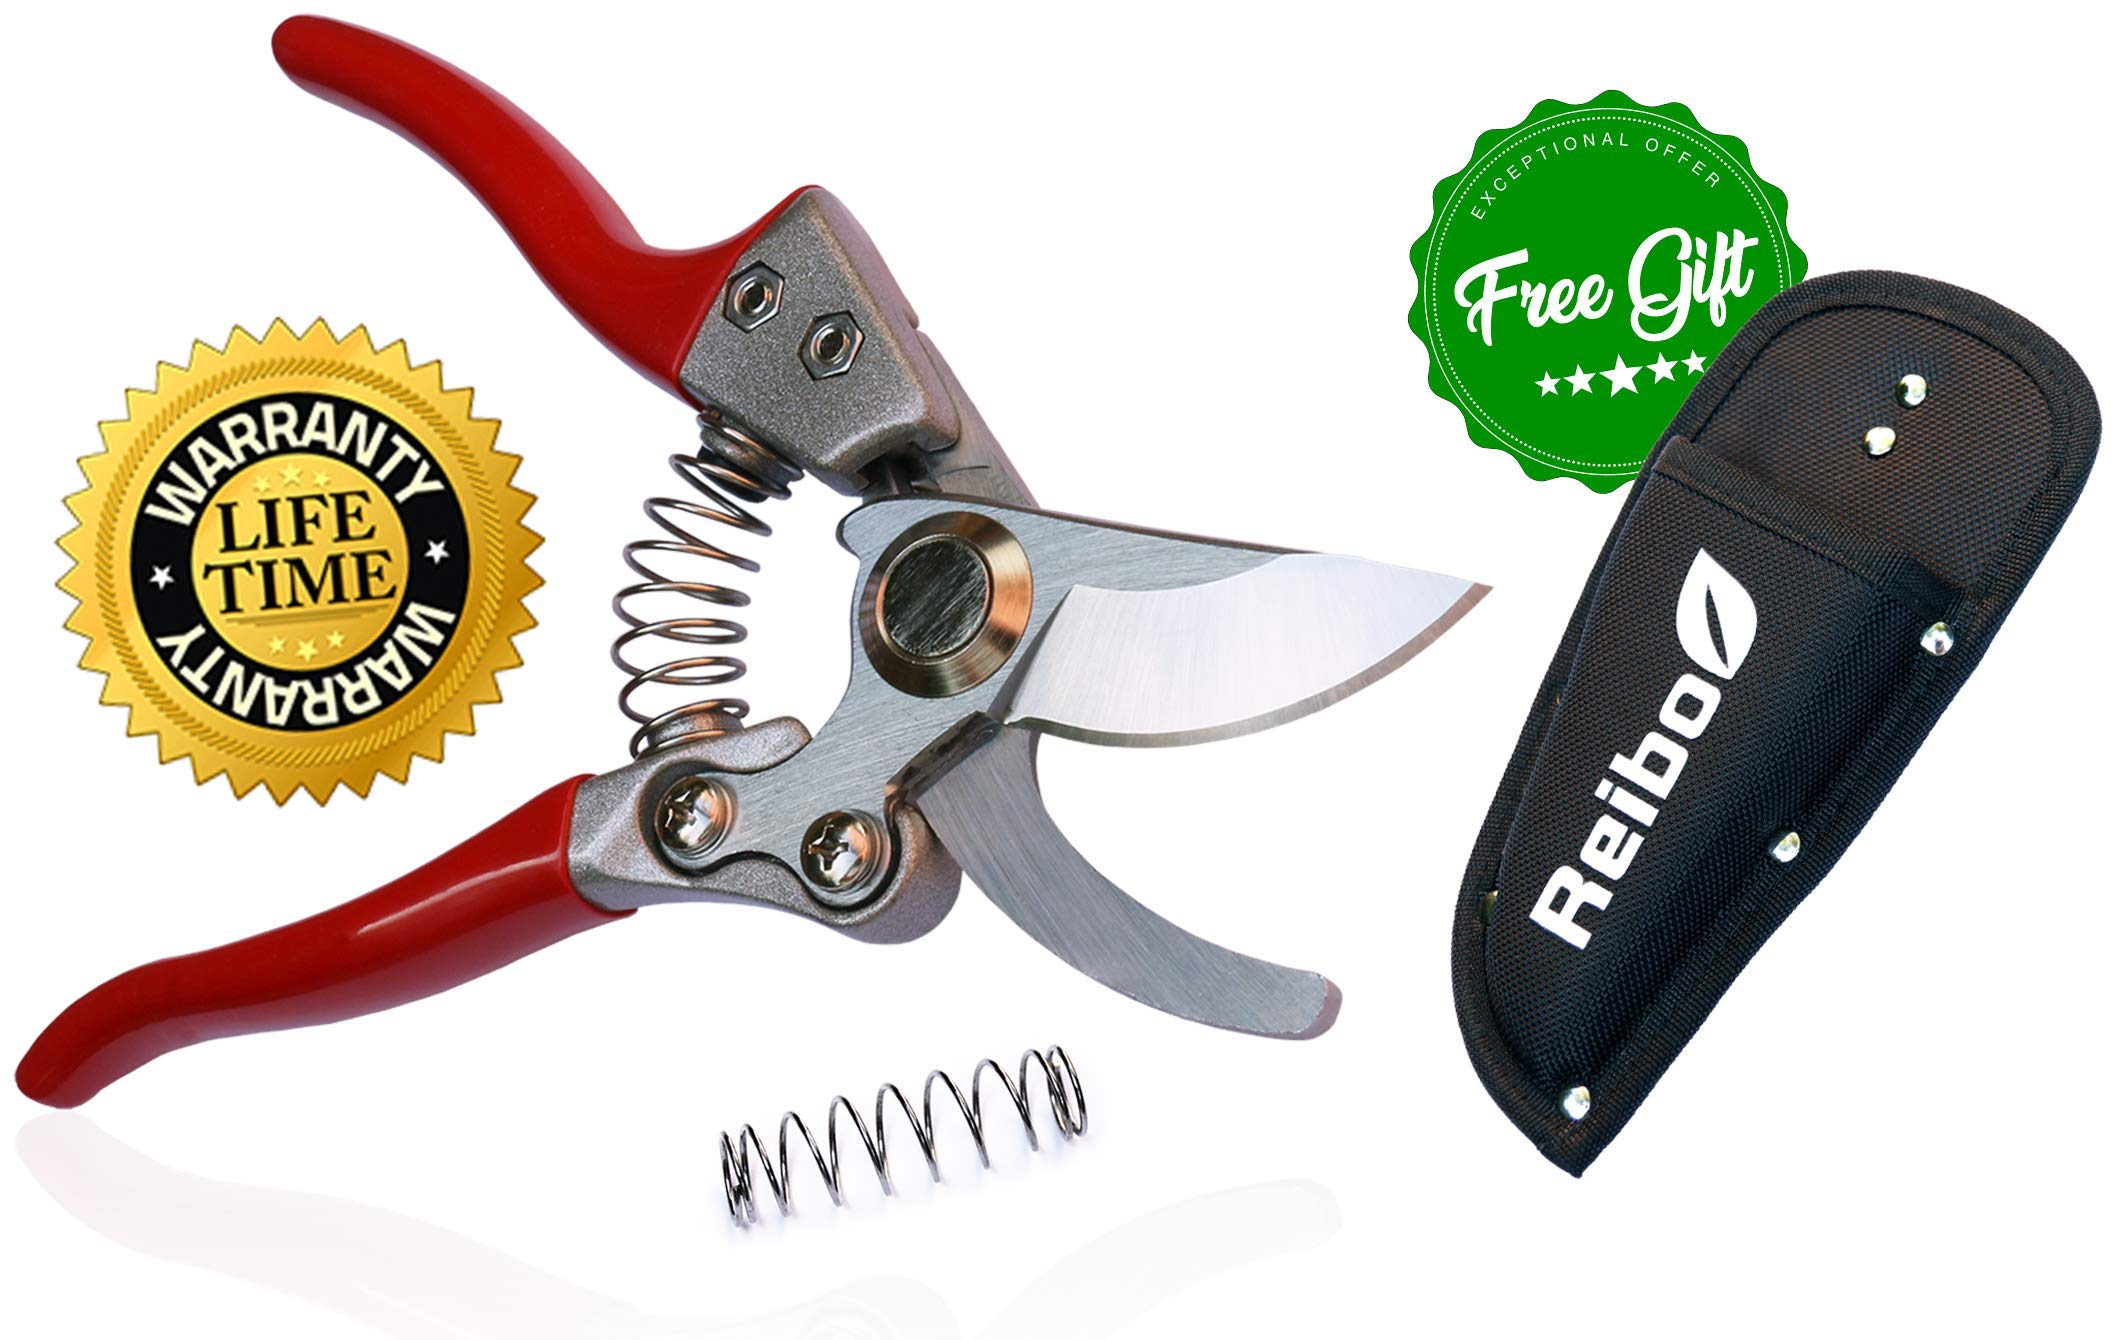 8'' Professional Garden Bypass Pruning Shears with Free Holster, Premium Razor Sharp SK5 Stainless Steel Blades, Heavy Duty Hand Pruners, Pruning Scissors, Garden Clippers by Reibo by Reibo